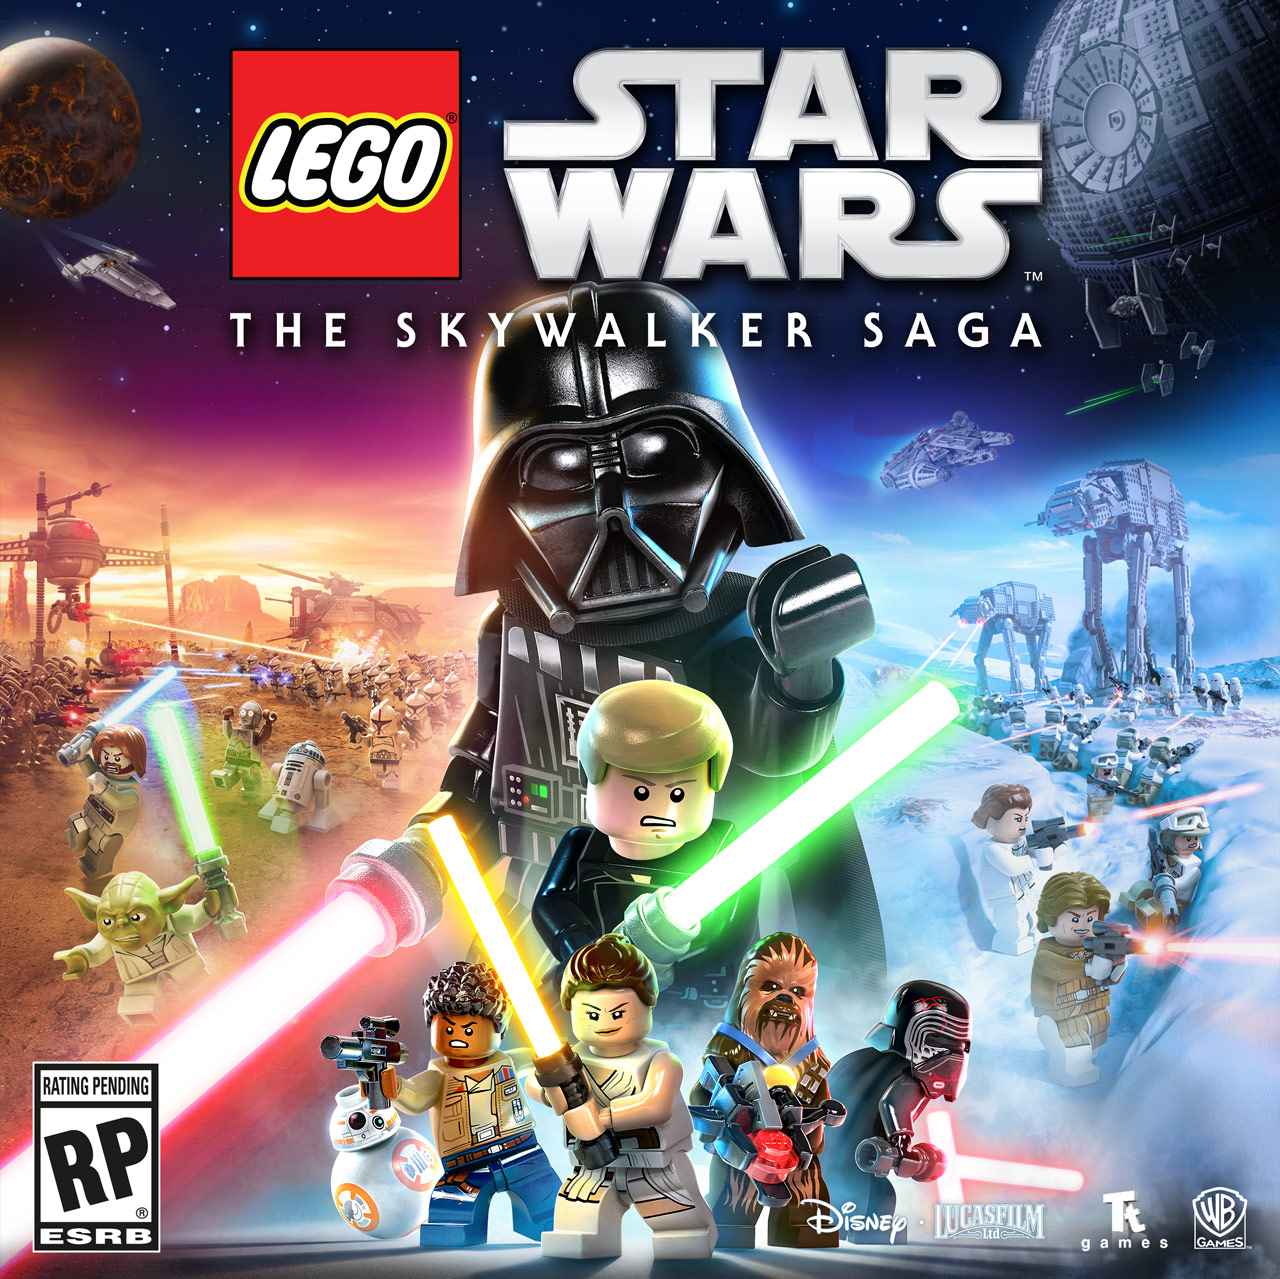 Star Wars LEGO The Skywalker Saga